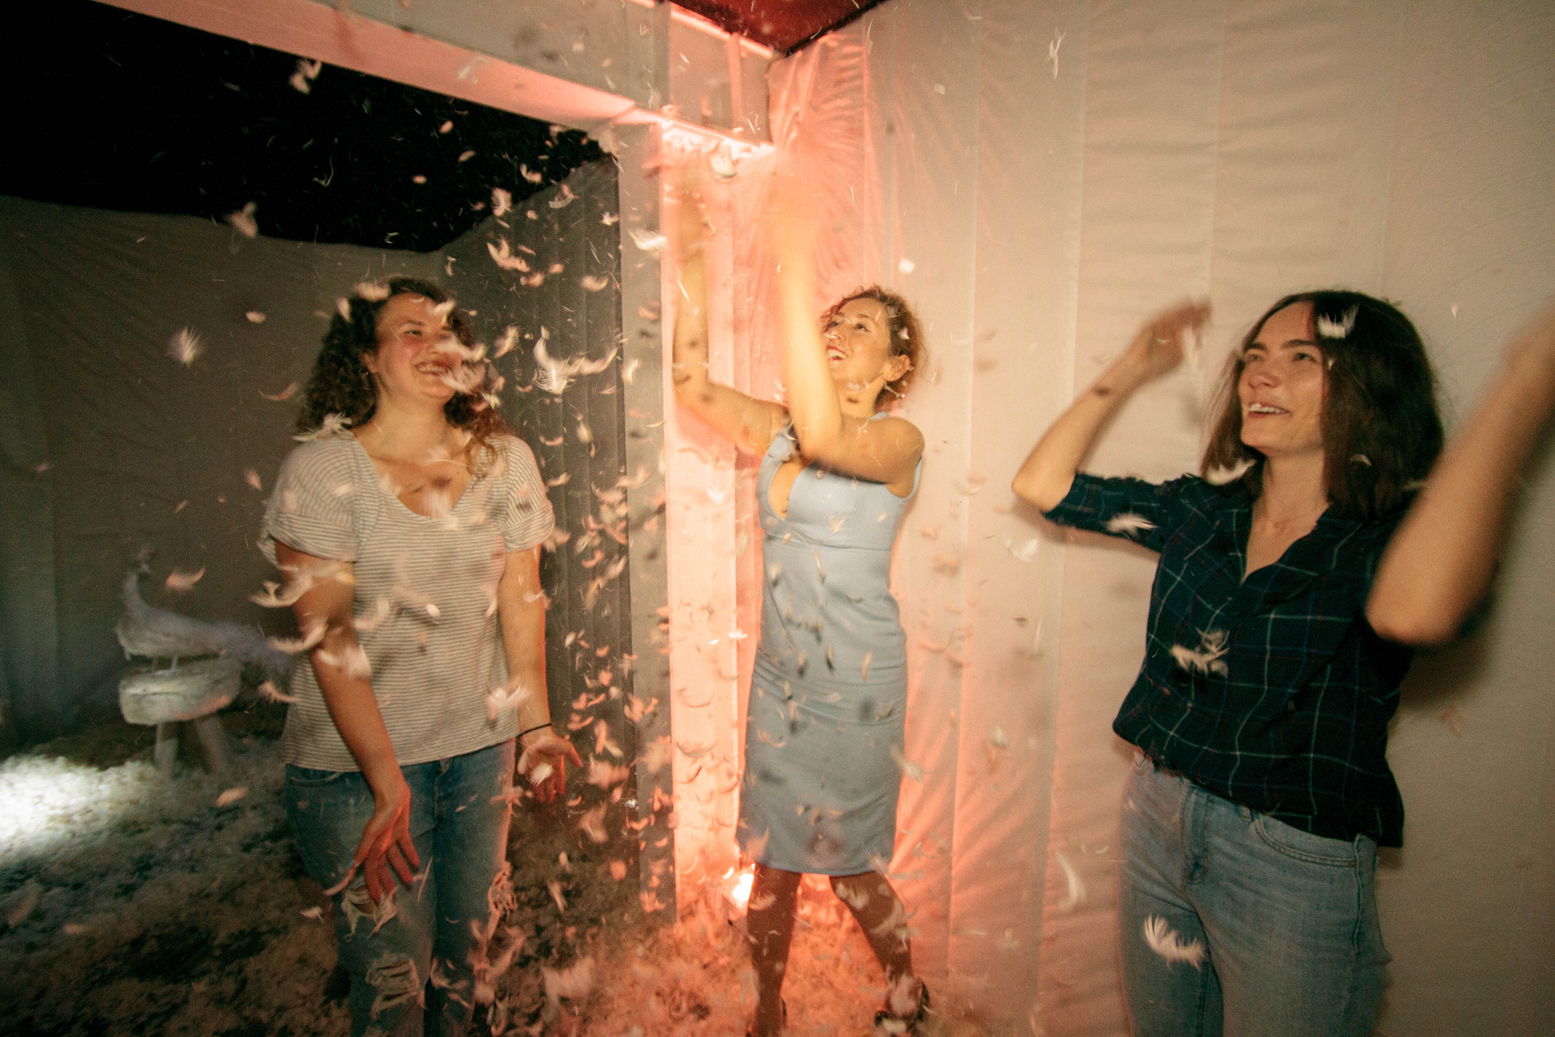 Large-scale pillow fights, this immersive event - centred on the theme of domesticity - will appeal to all your senses.